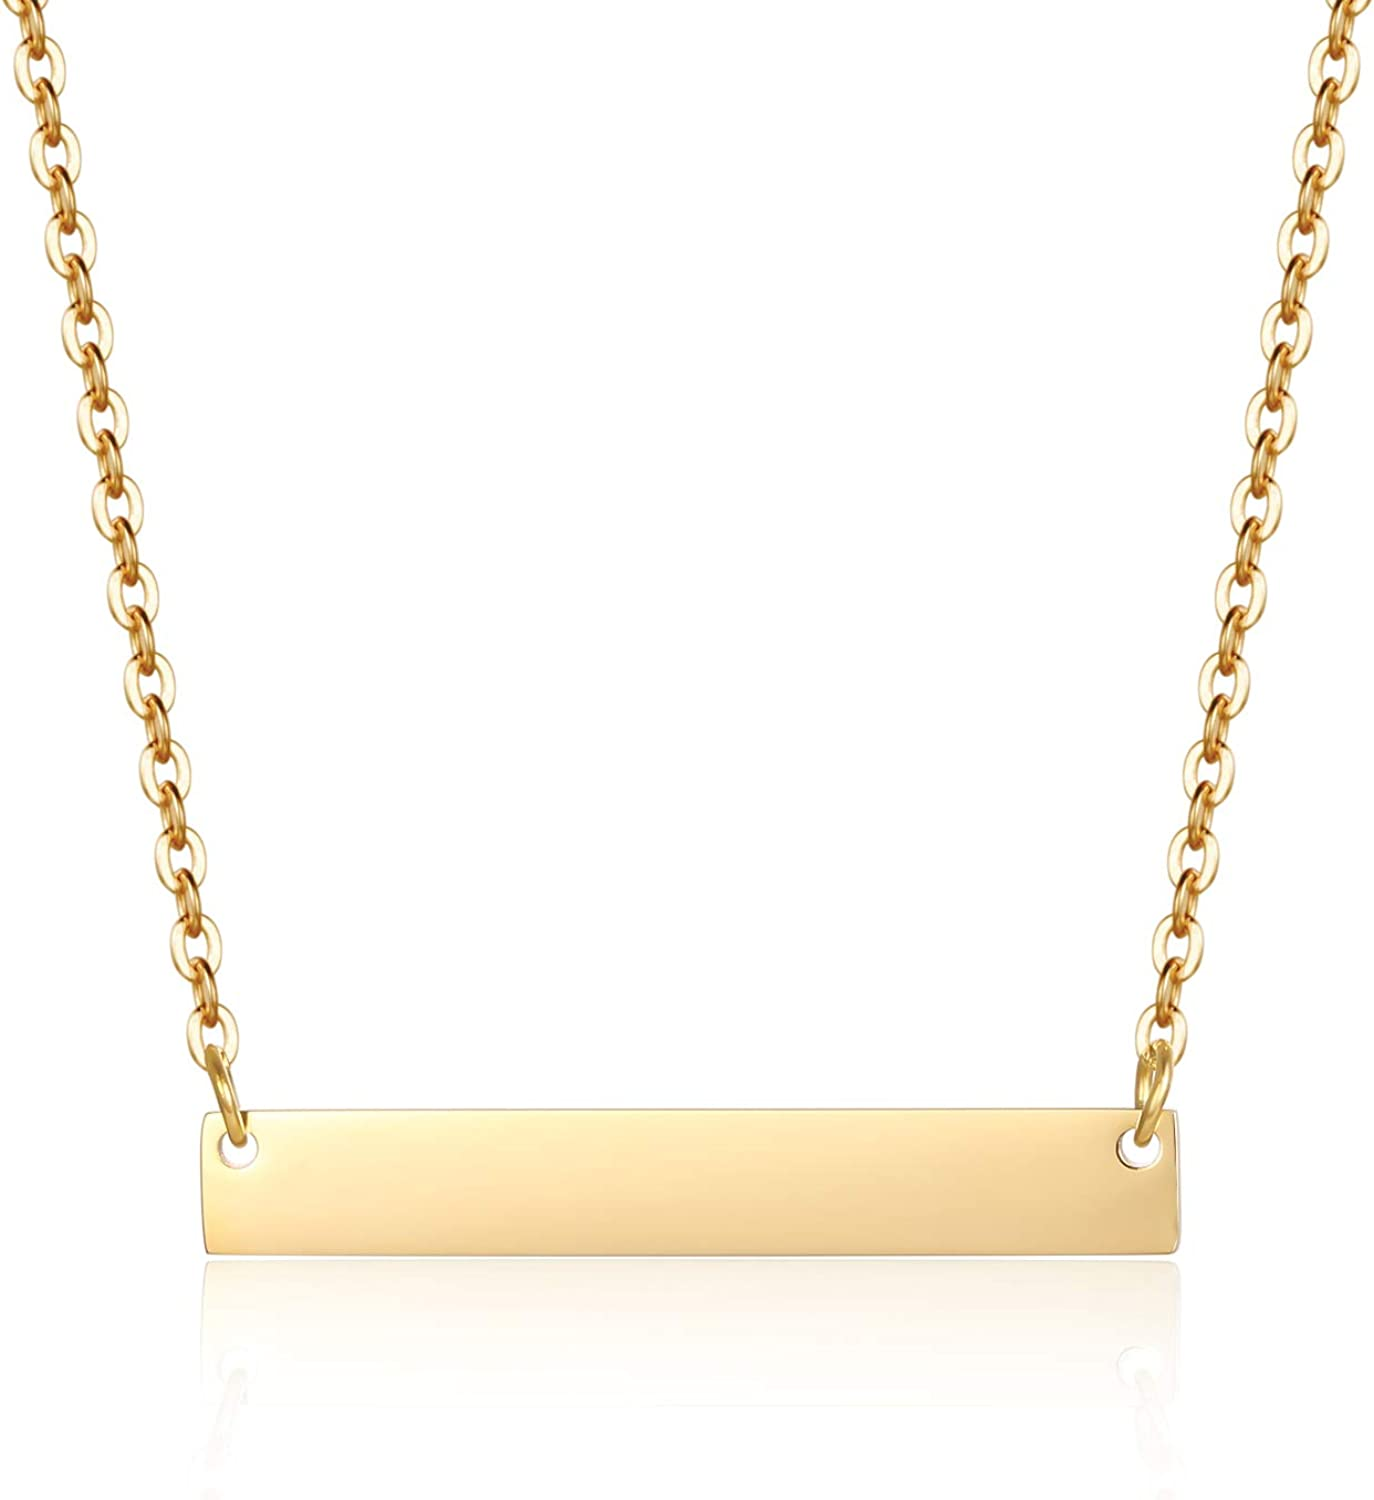 Gold Sales for sale Bar Necklace Stainless Steel Adjustable w Chain Max 67% OFF Plated